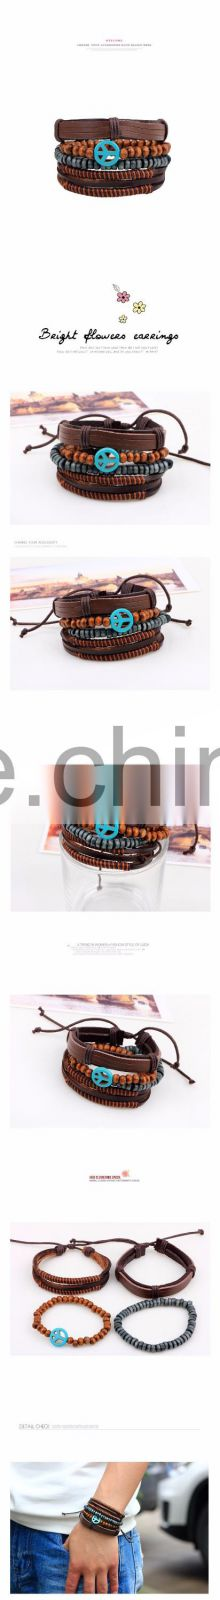 Global best selling items rope bracelet for men fashion multi layer leather bracelet with wooden small beads bracelet